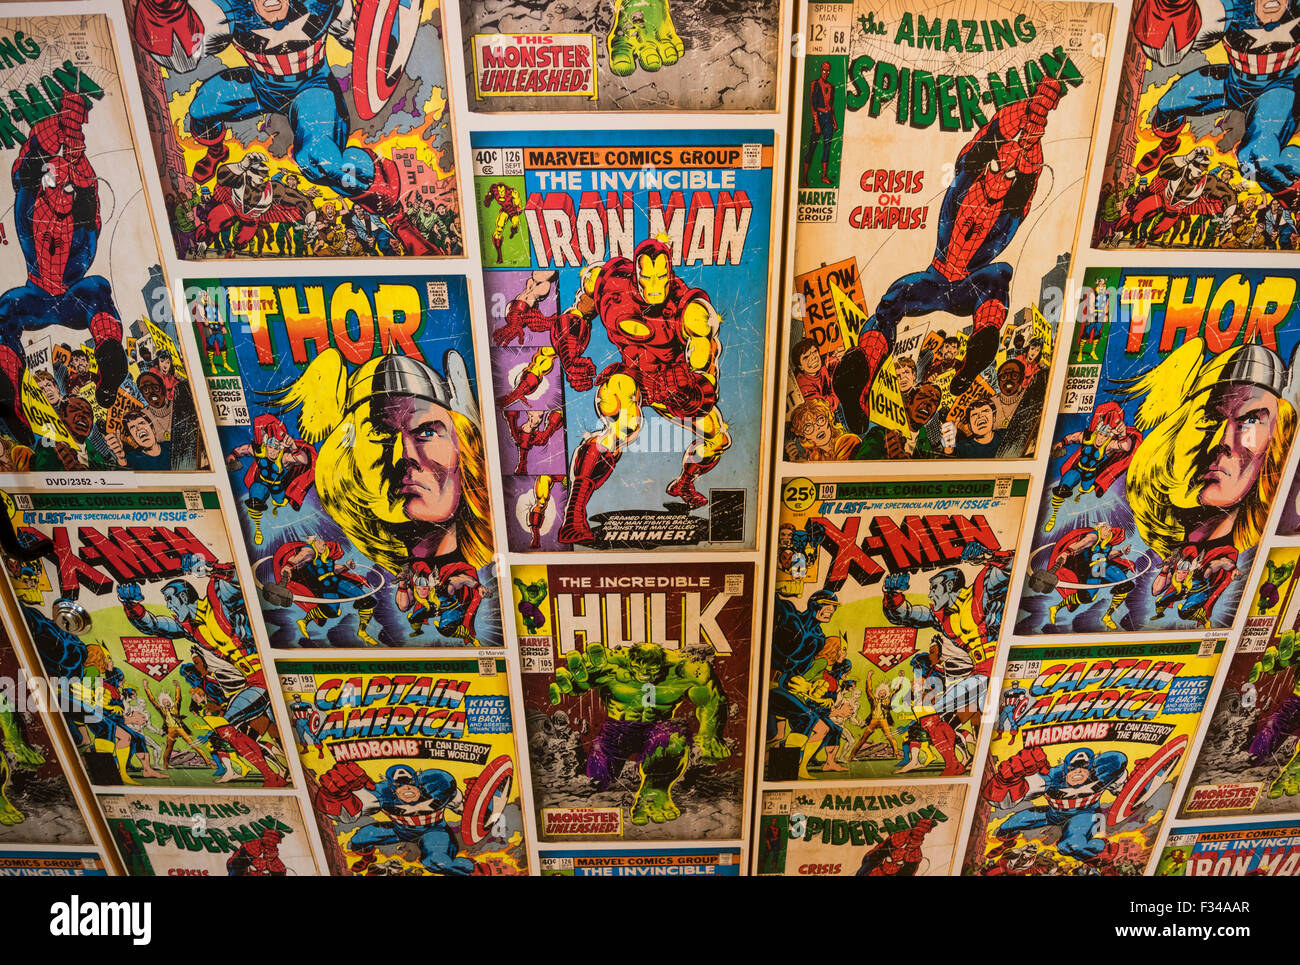 Wallpaper display created from covers of Marvel Comics featuring Marvel  Comic super heroes    Stock. Marvel Comics Stock Photos   Marvel Comics Stock Images   Alamy